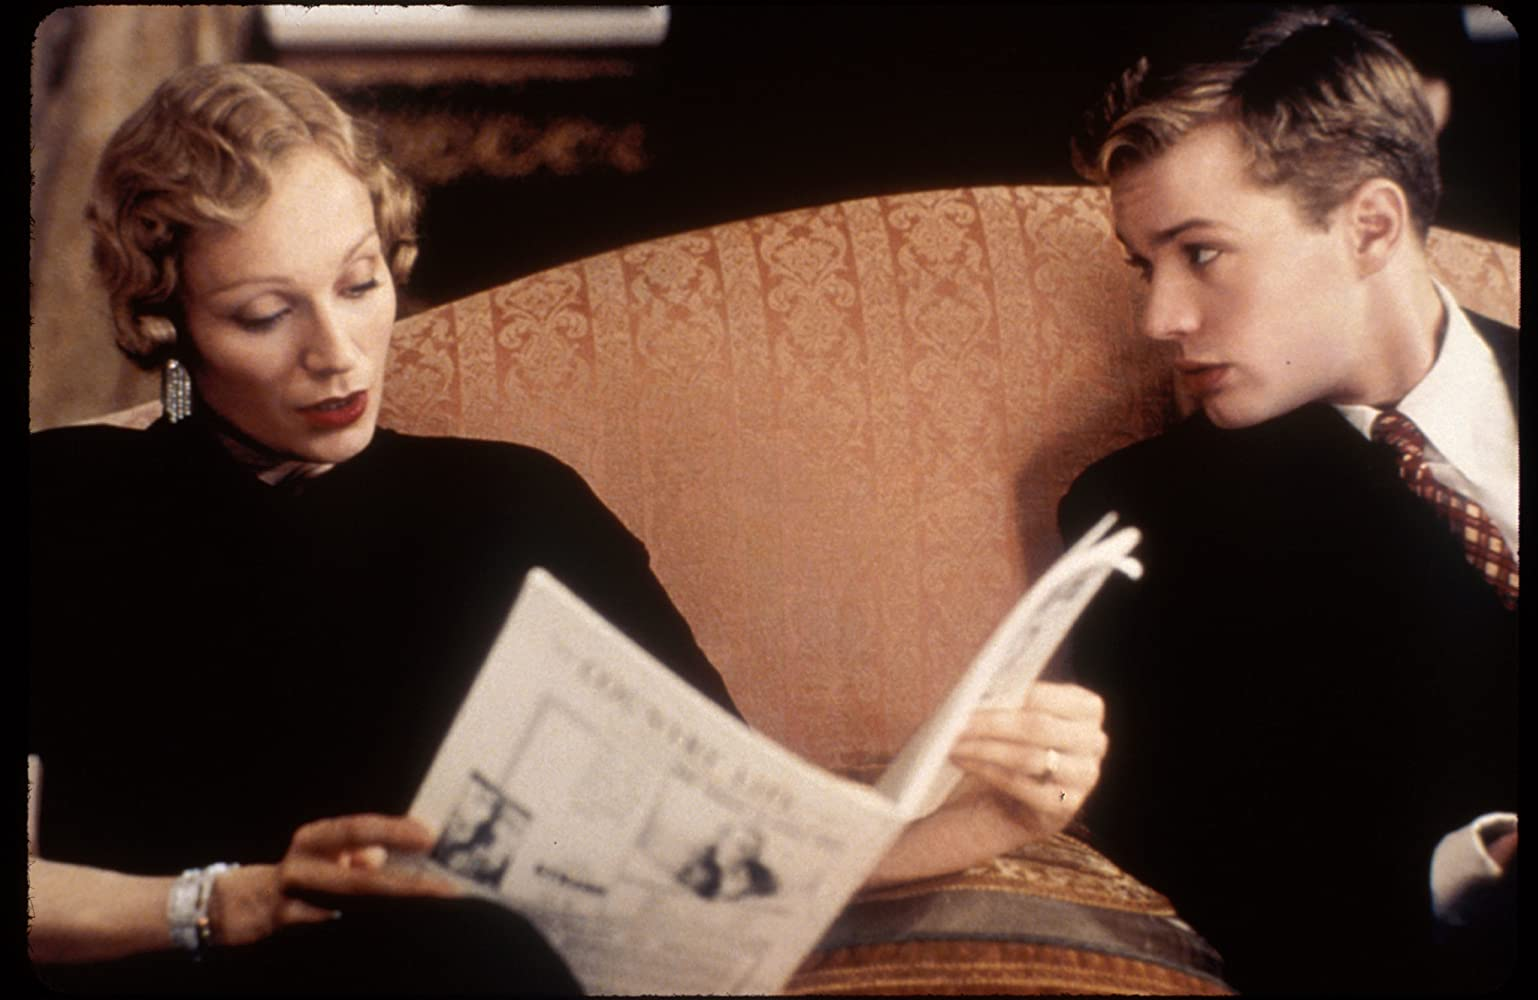 Ryan Phillippe and Kristin Scott Thomas in Gosford Park (2001)